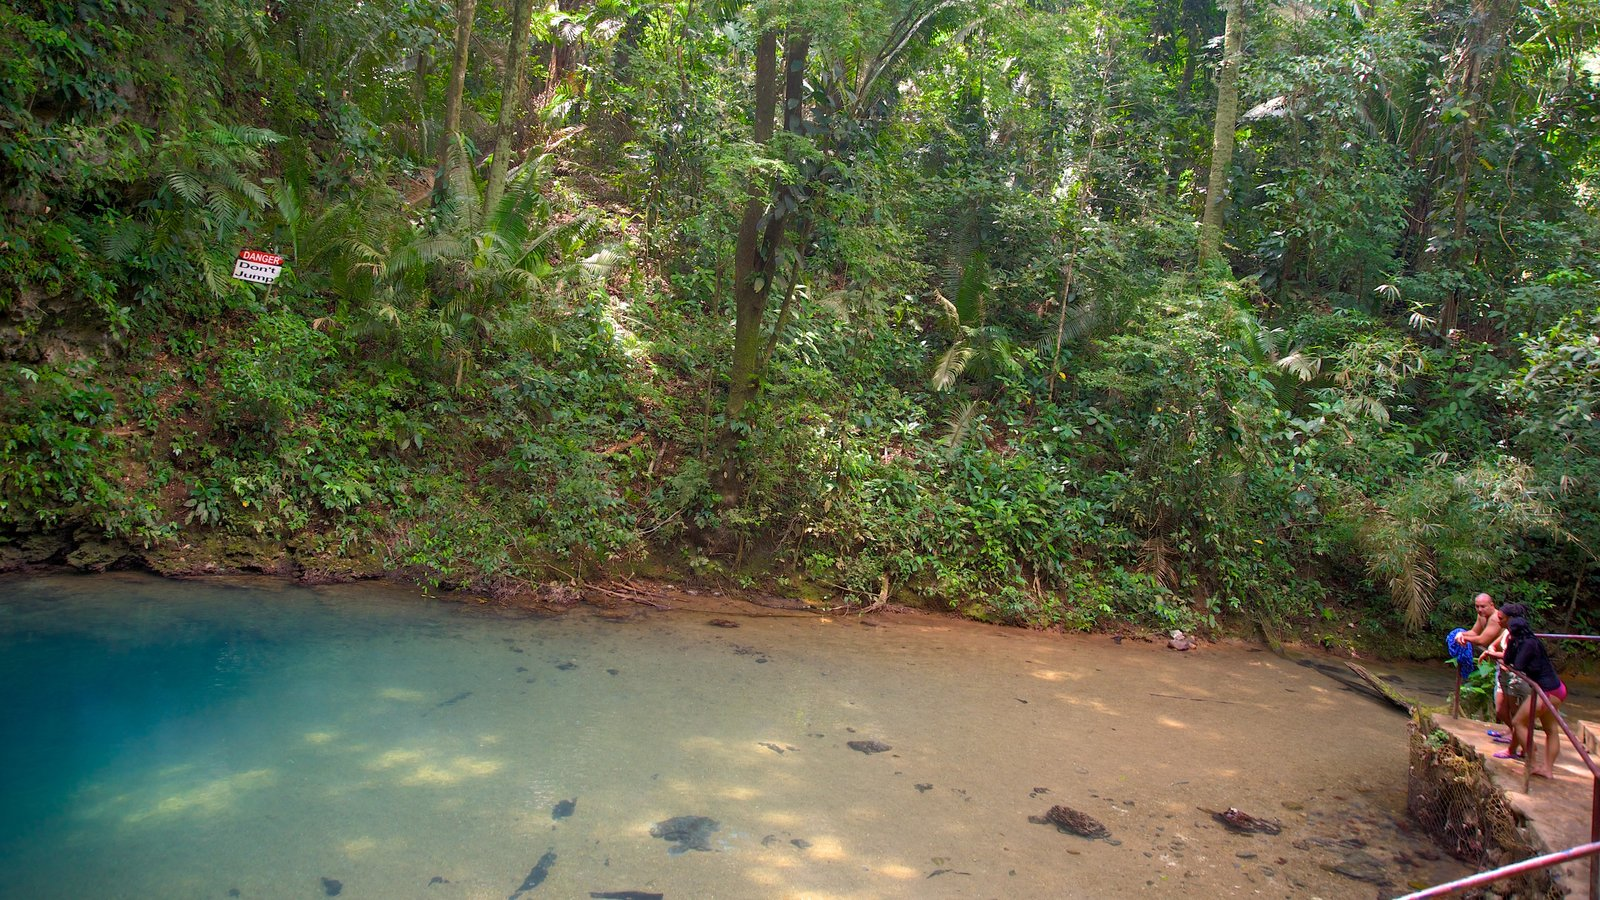 St. Herman's Blue Hole National Park Pictures: View Photos ...